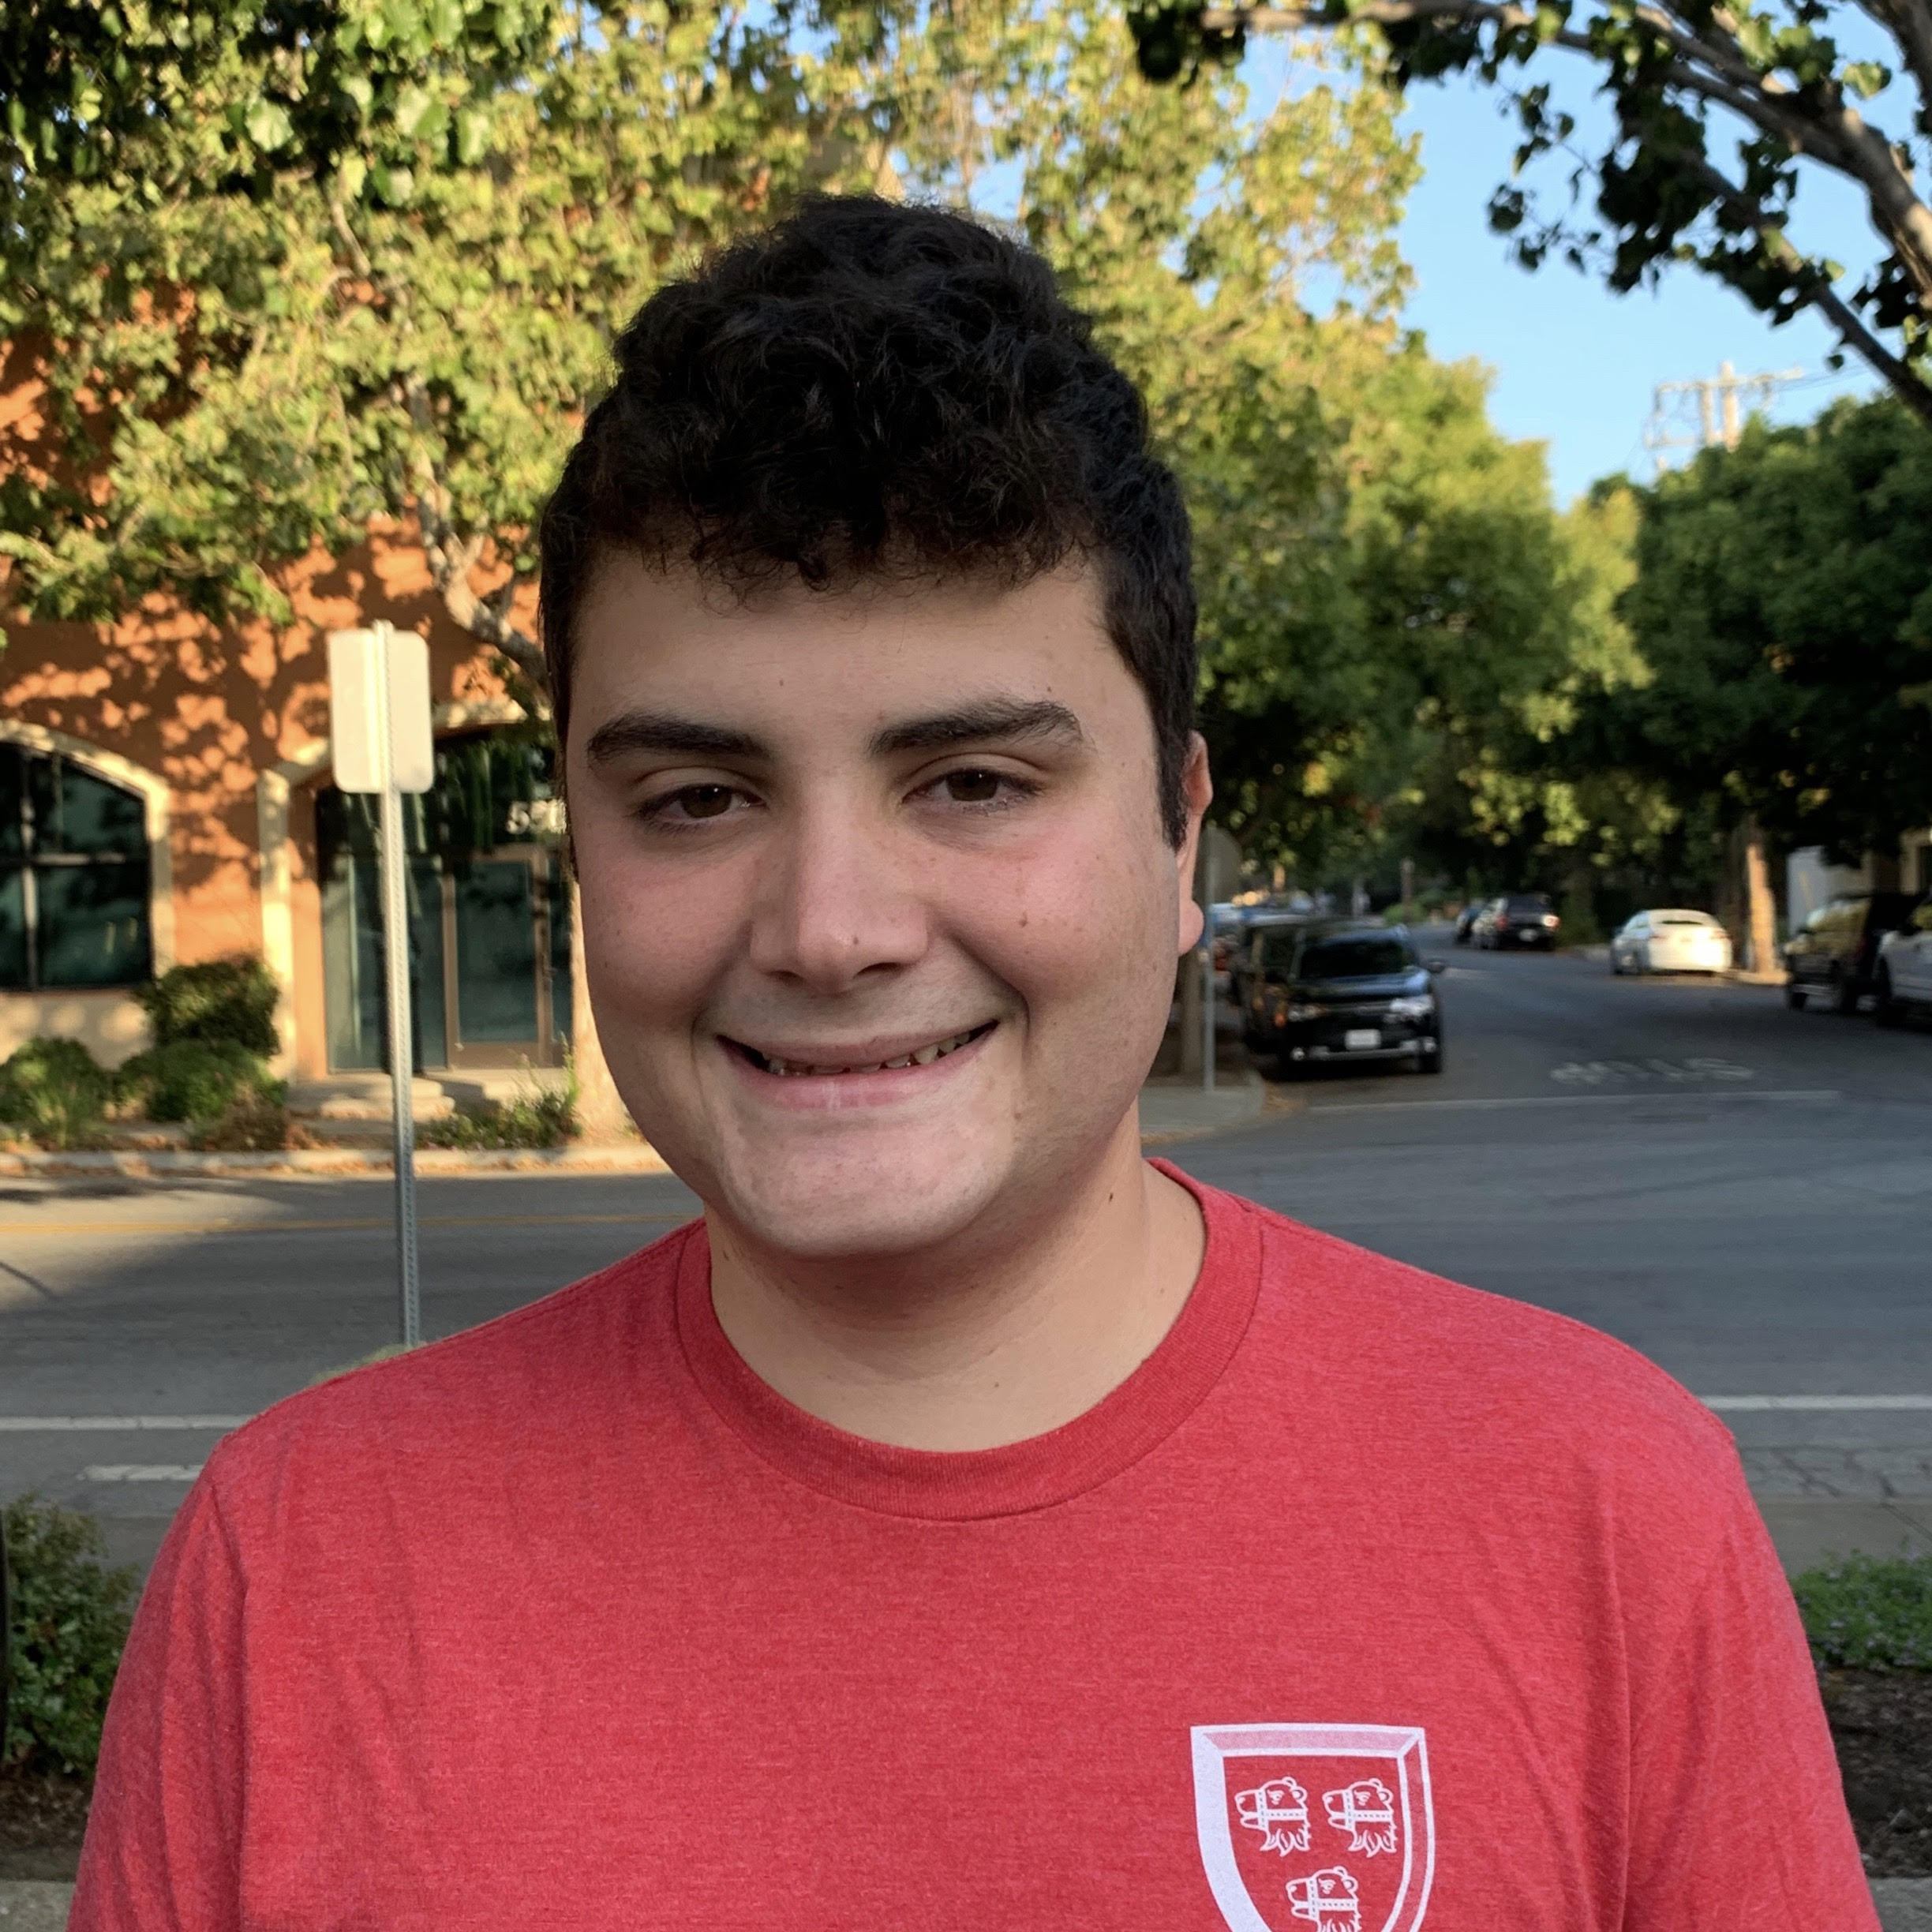 Jacob Essig  is the Social Chair for the Princeton Rocketry Club and has worked on the Micro-g NeXT project team. He is a prospective Computer Science and is interested in rocketry and robotics.